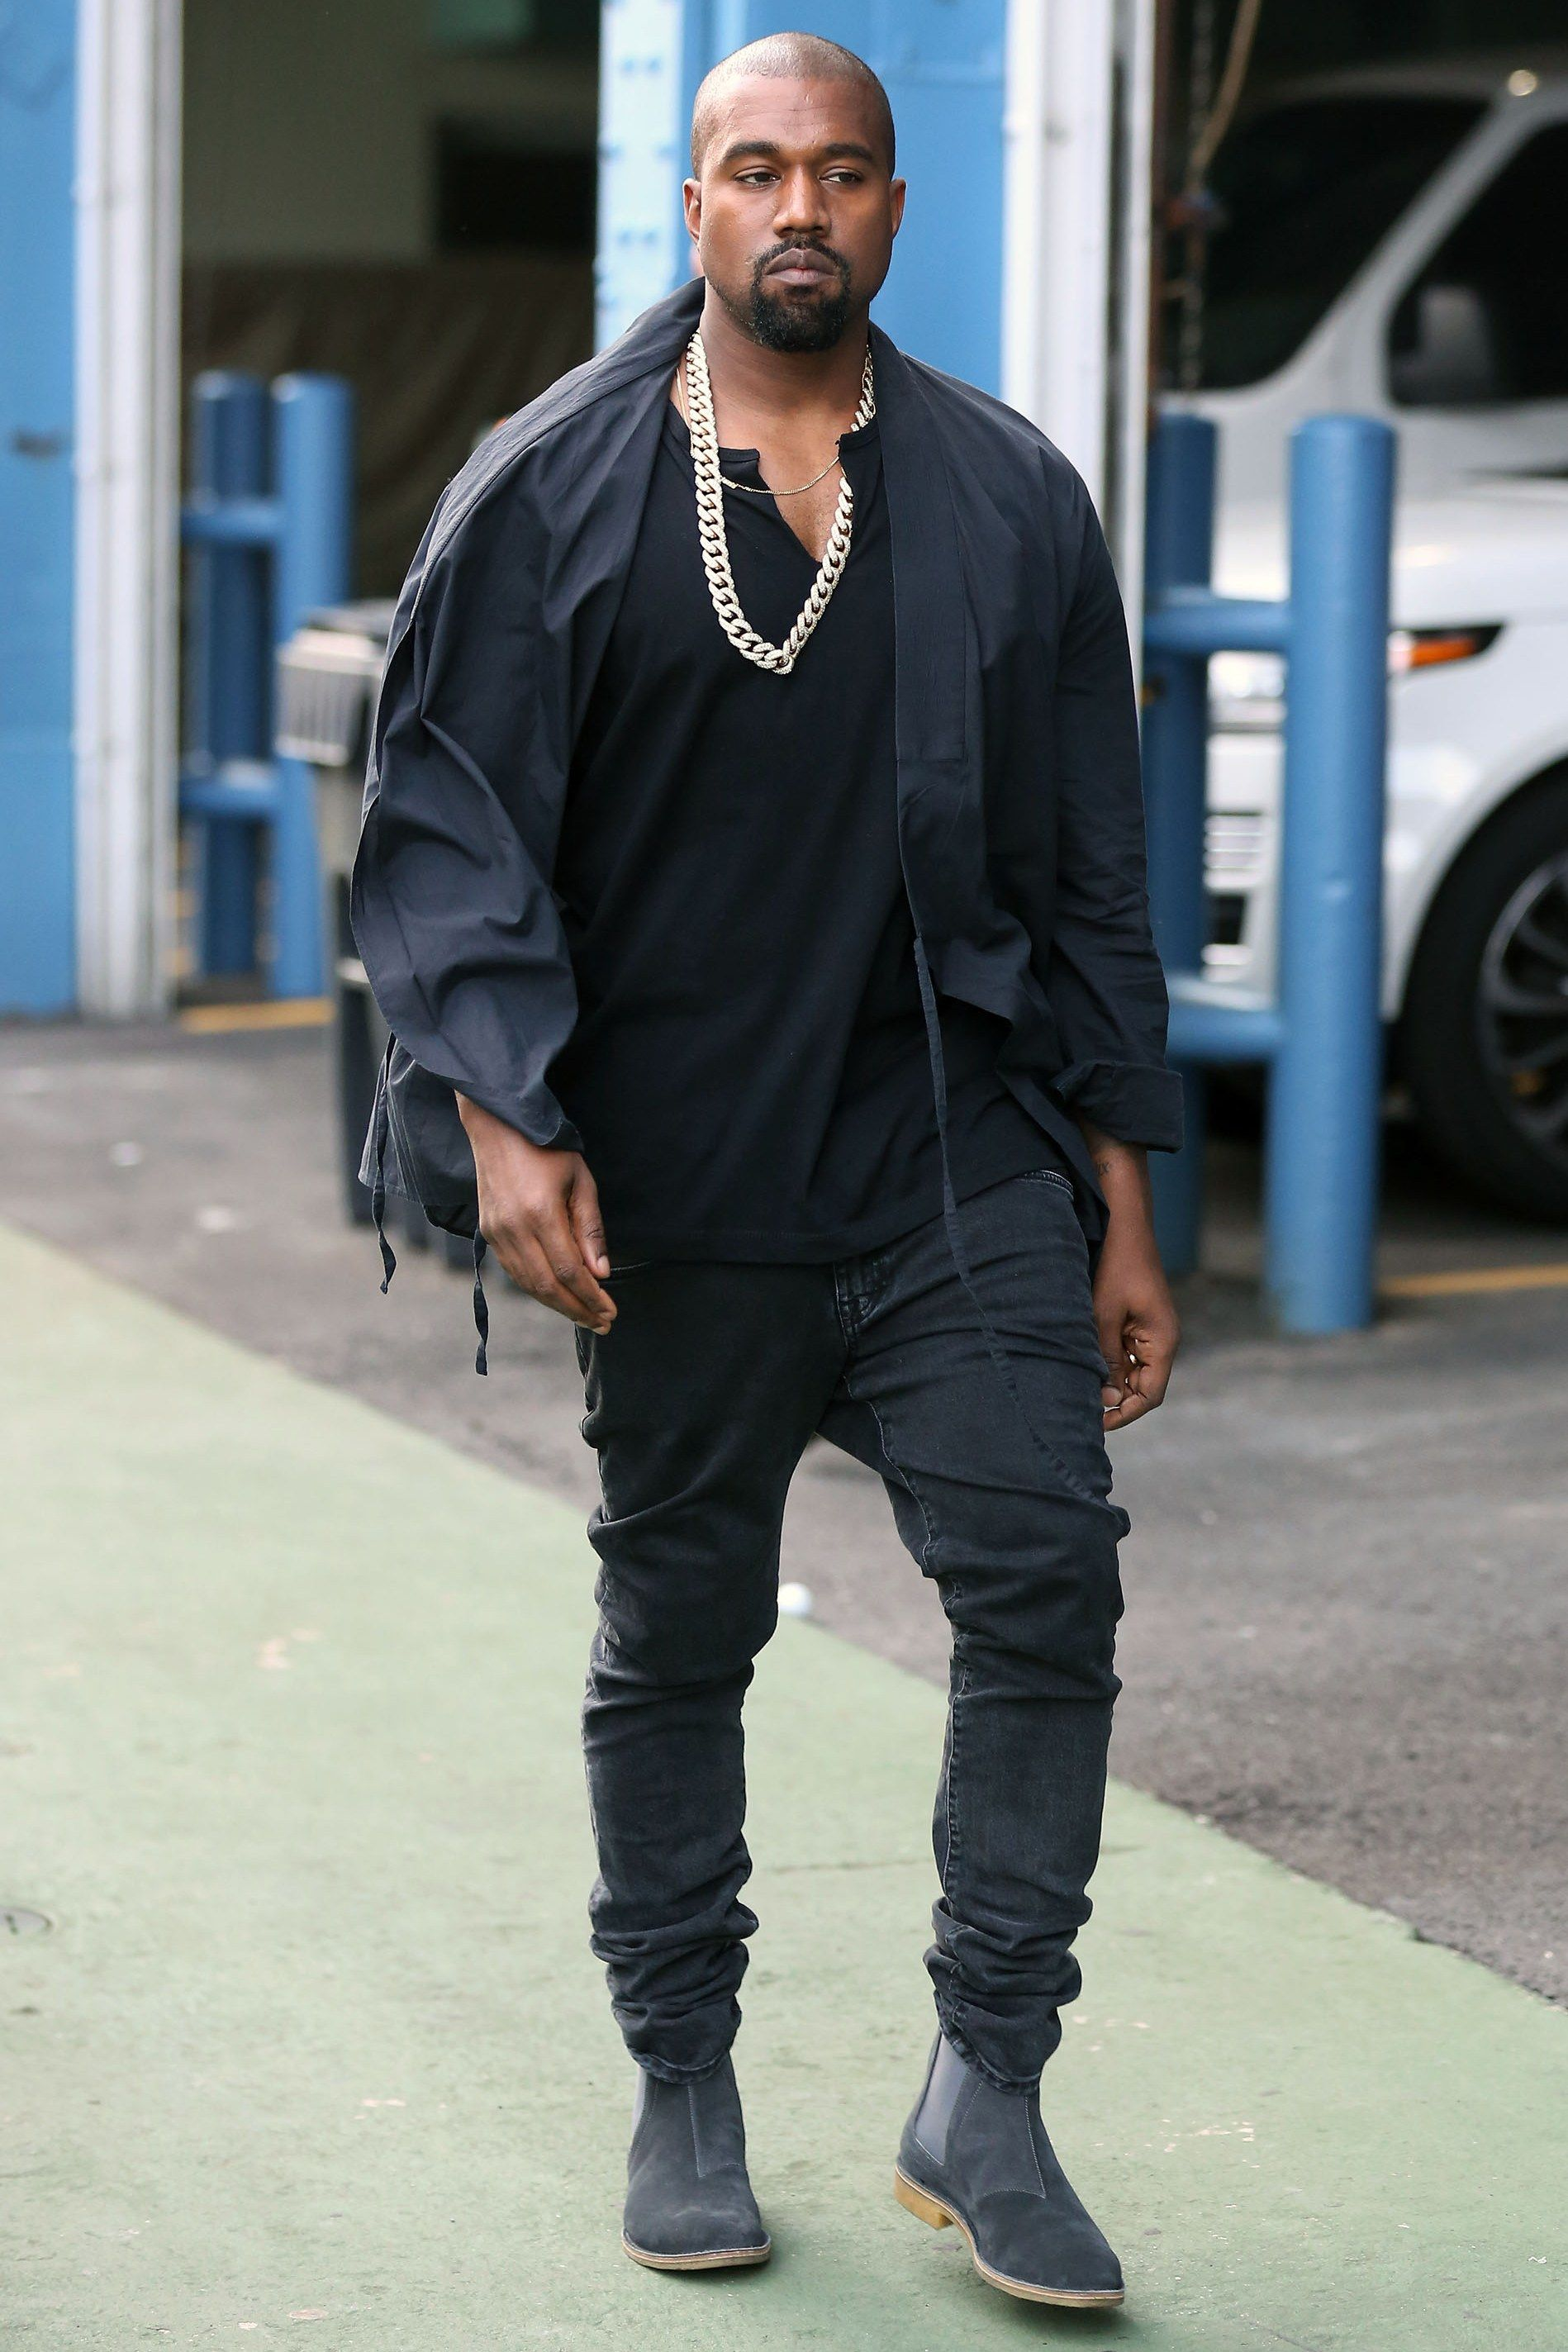 The Kanye West Look Book Kanye Fashion Kanye West Outfits Nice Casual Outfits For Men